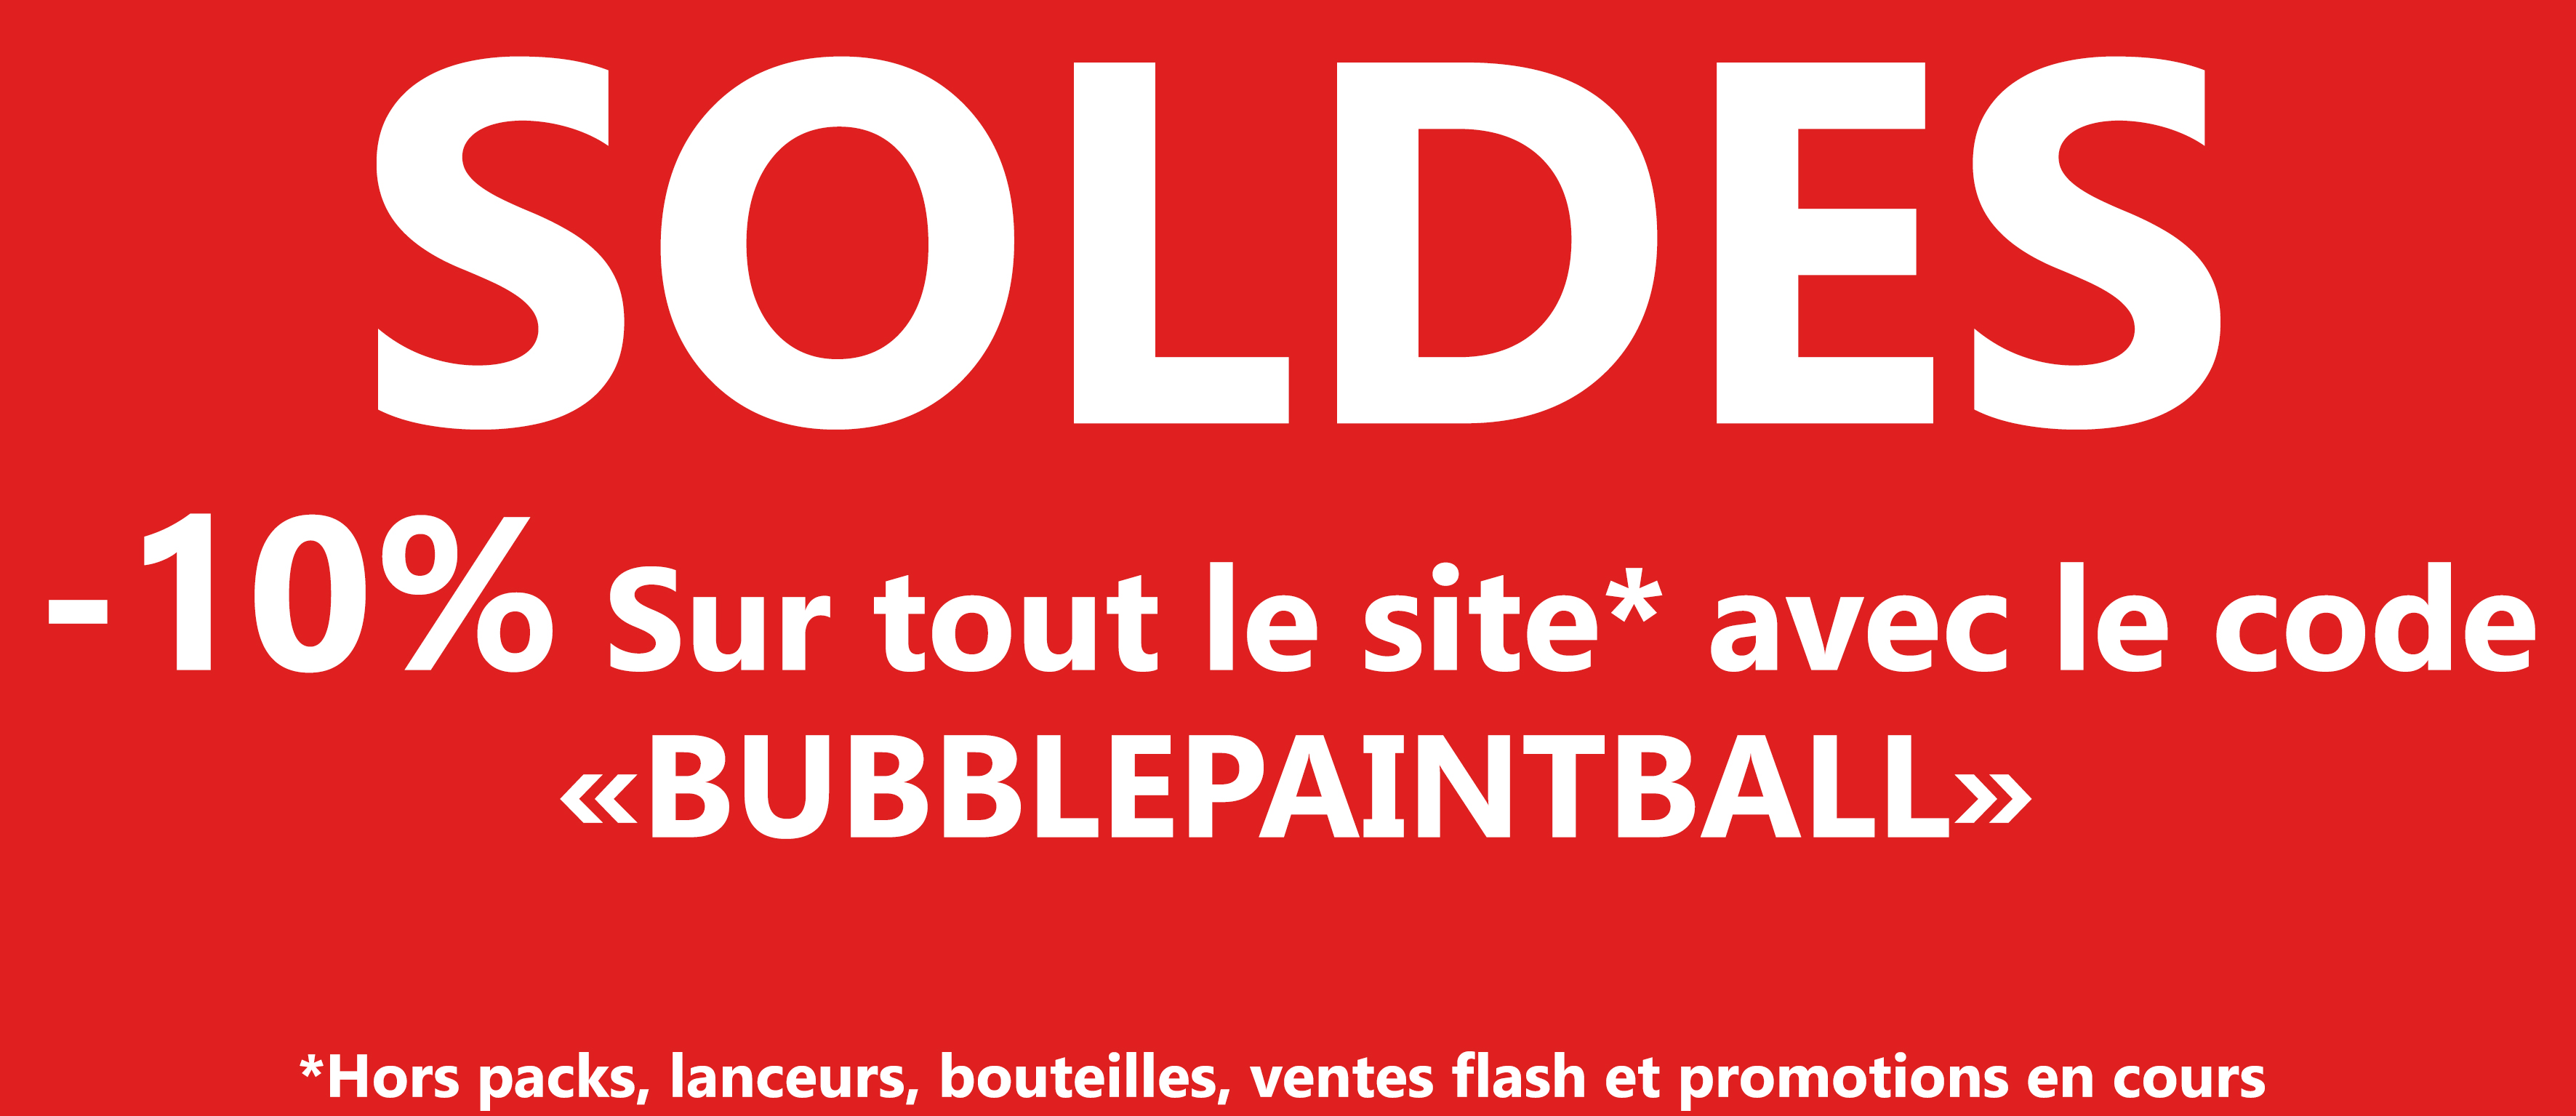 Soldes 10% paintball